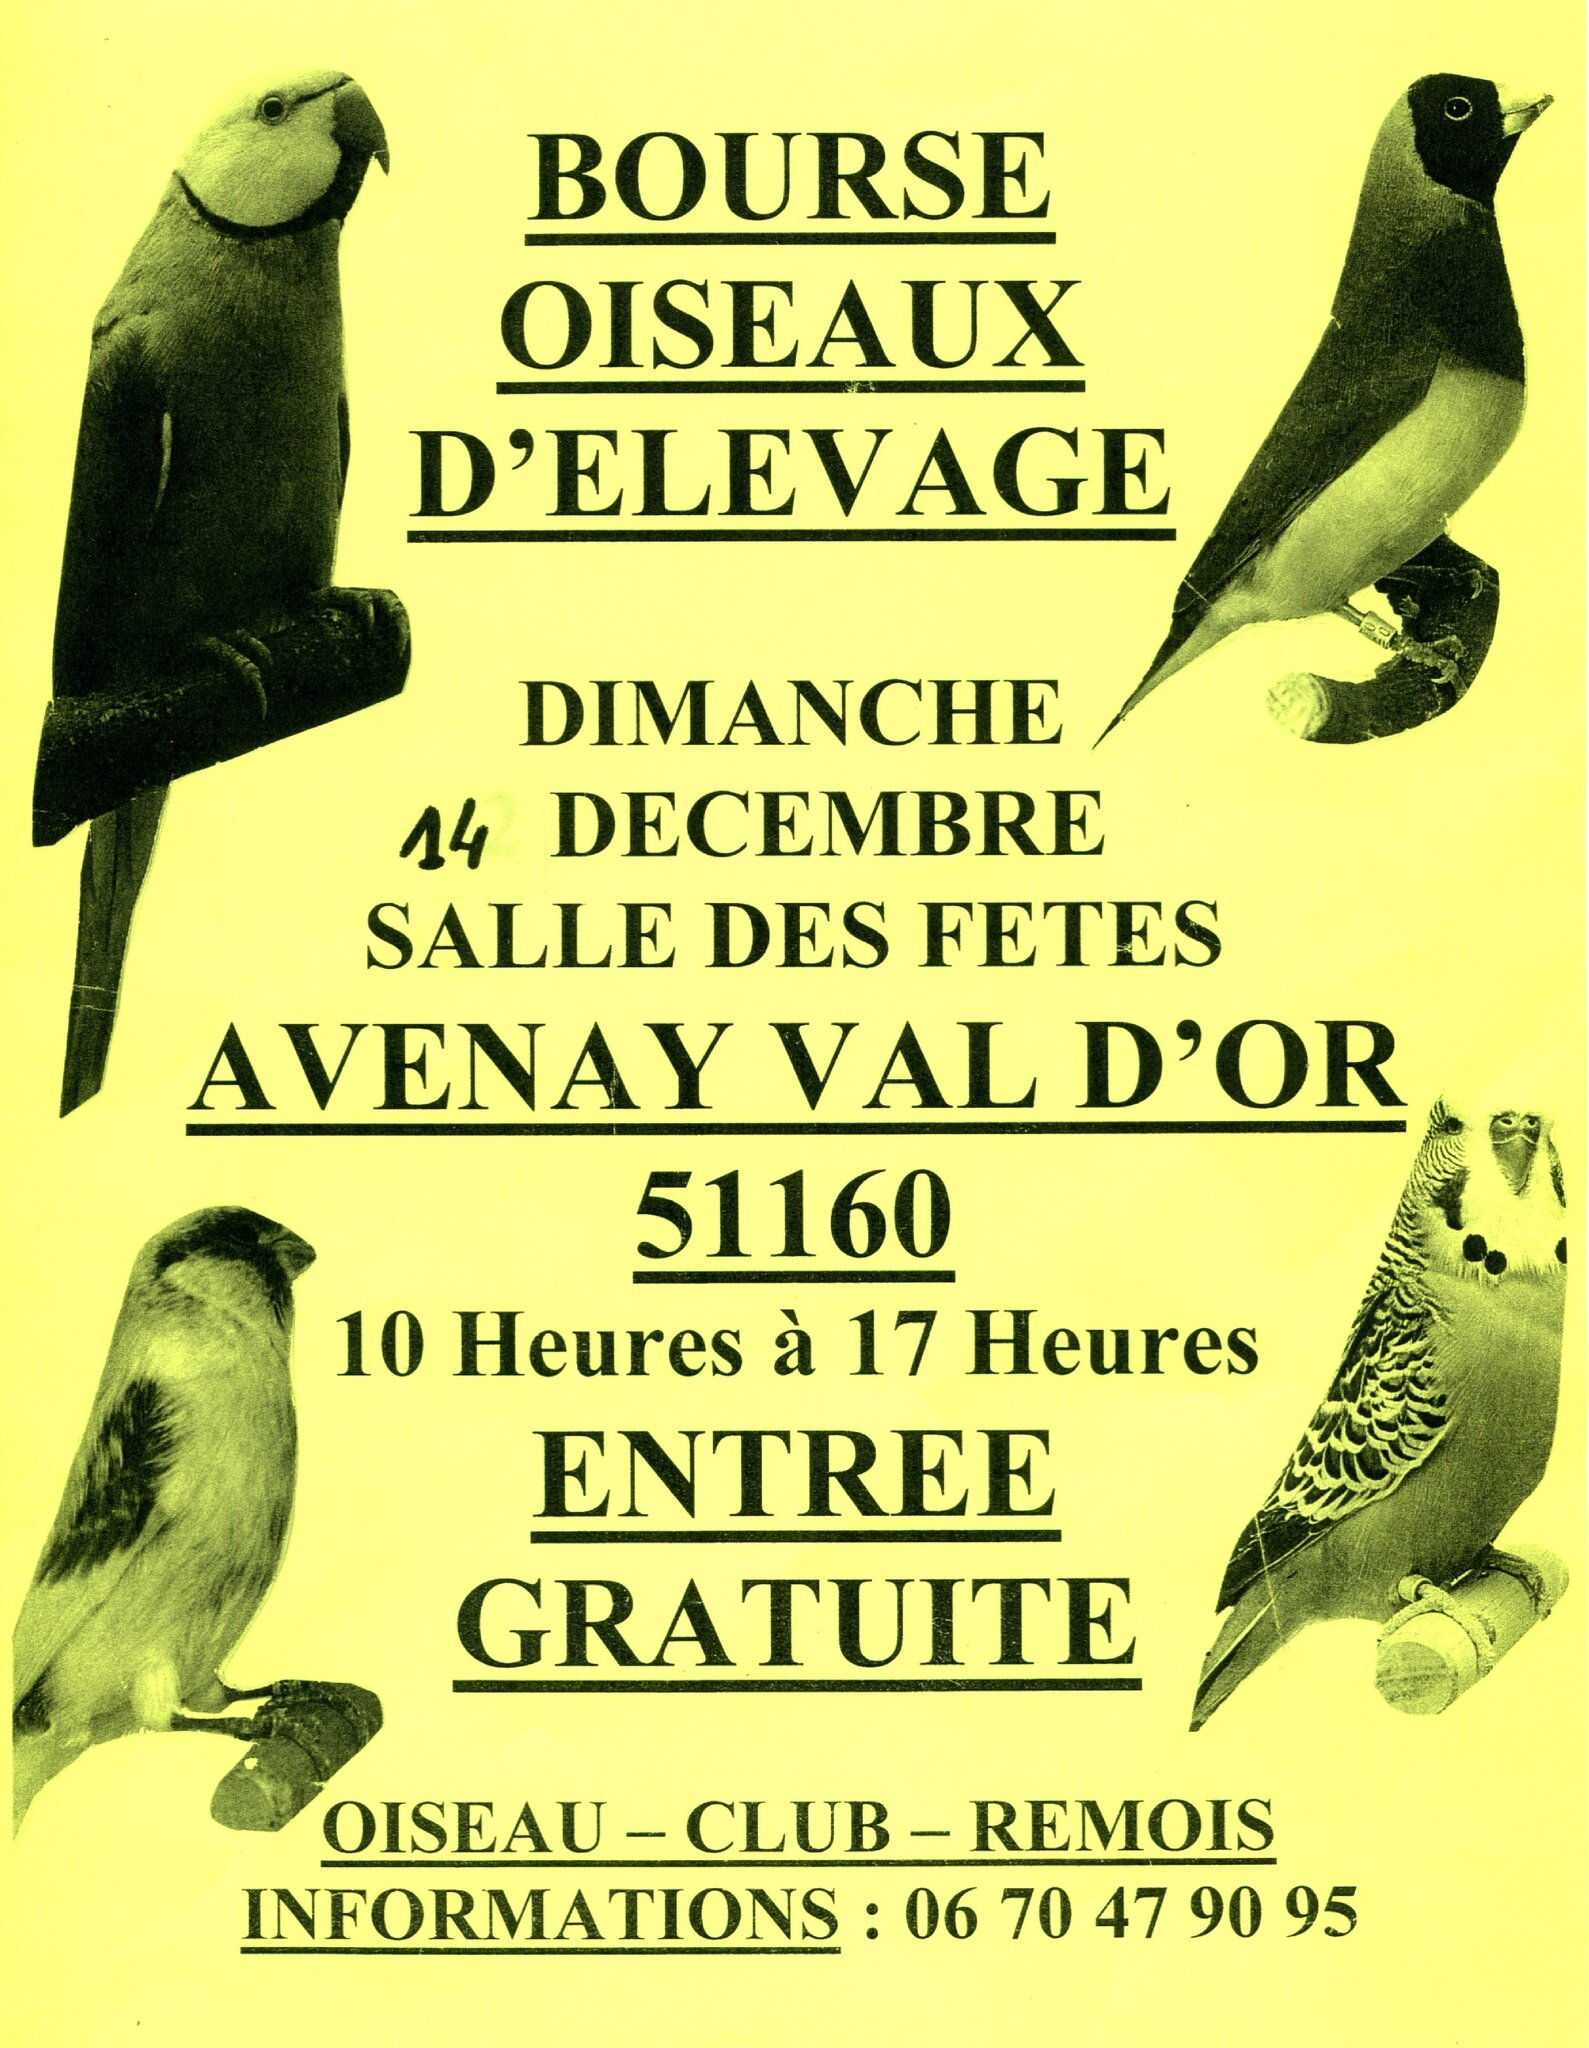 BOURSE AVENAY VAL D'OR